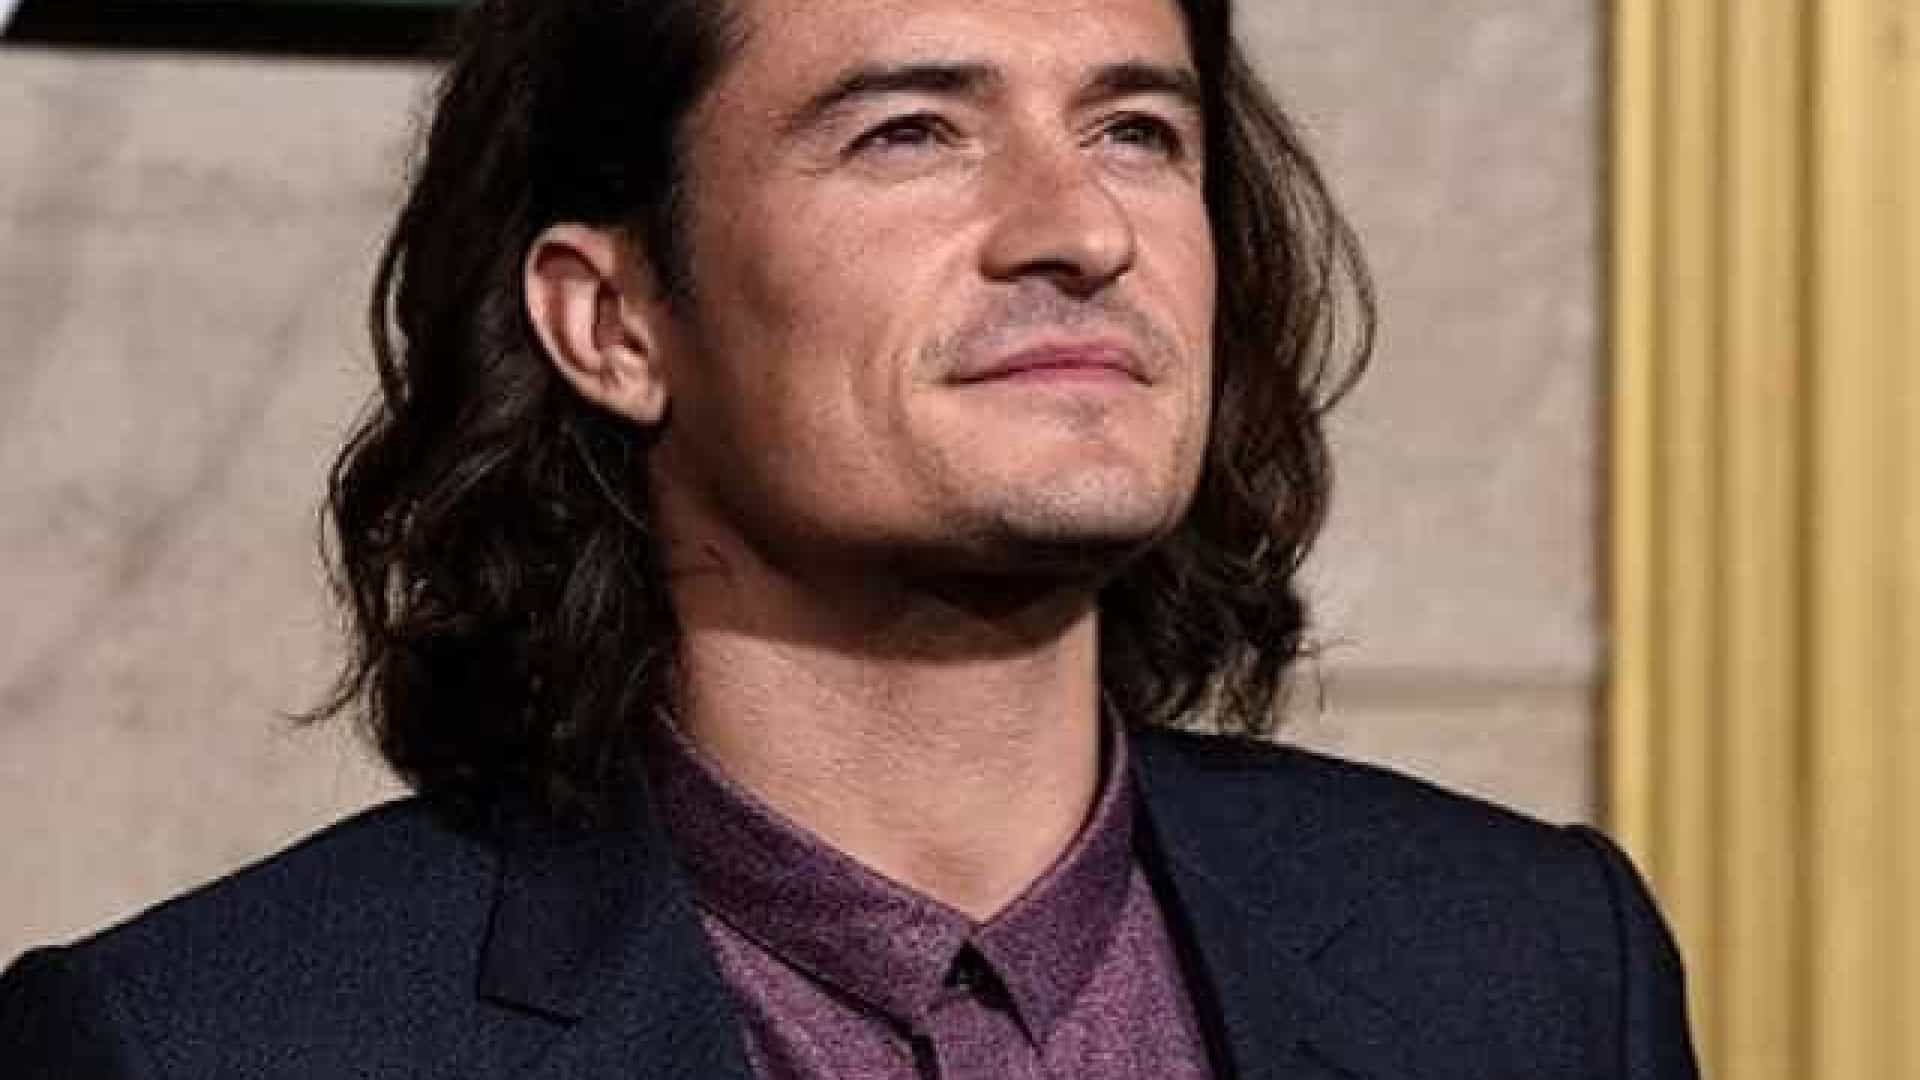 Orlando Blooms Bride undressed for Pirelli 11/16/2009